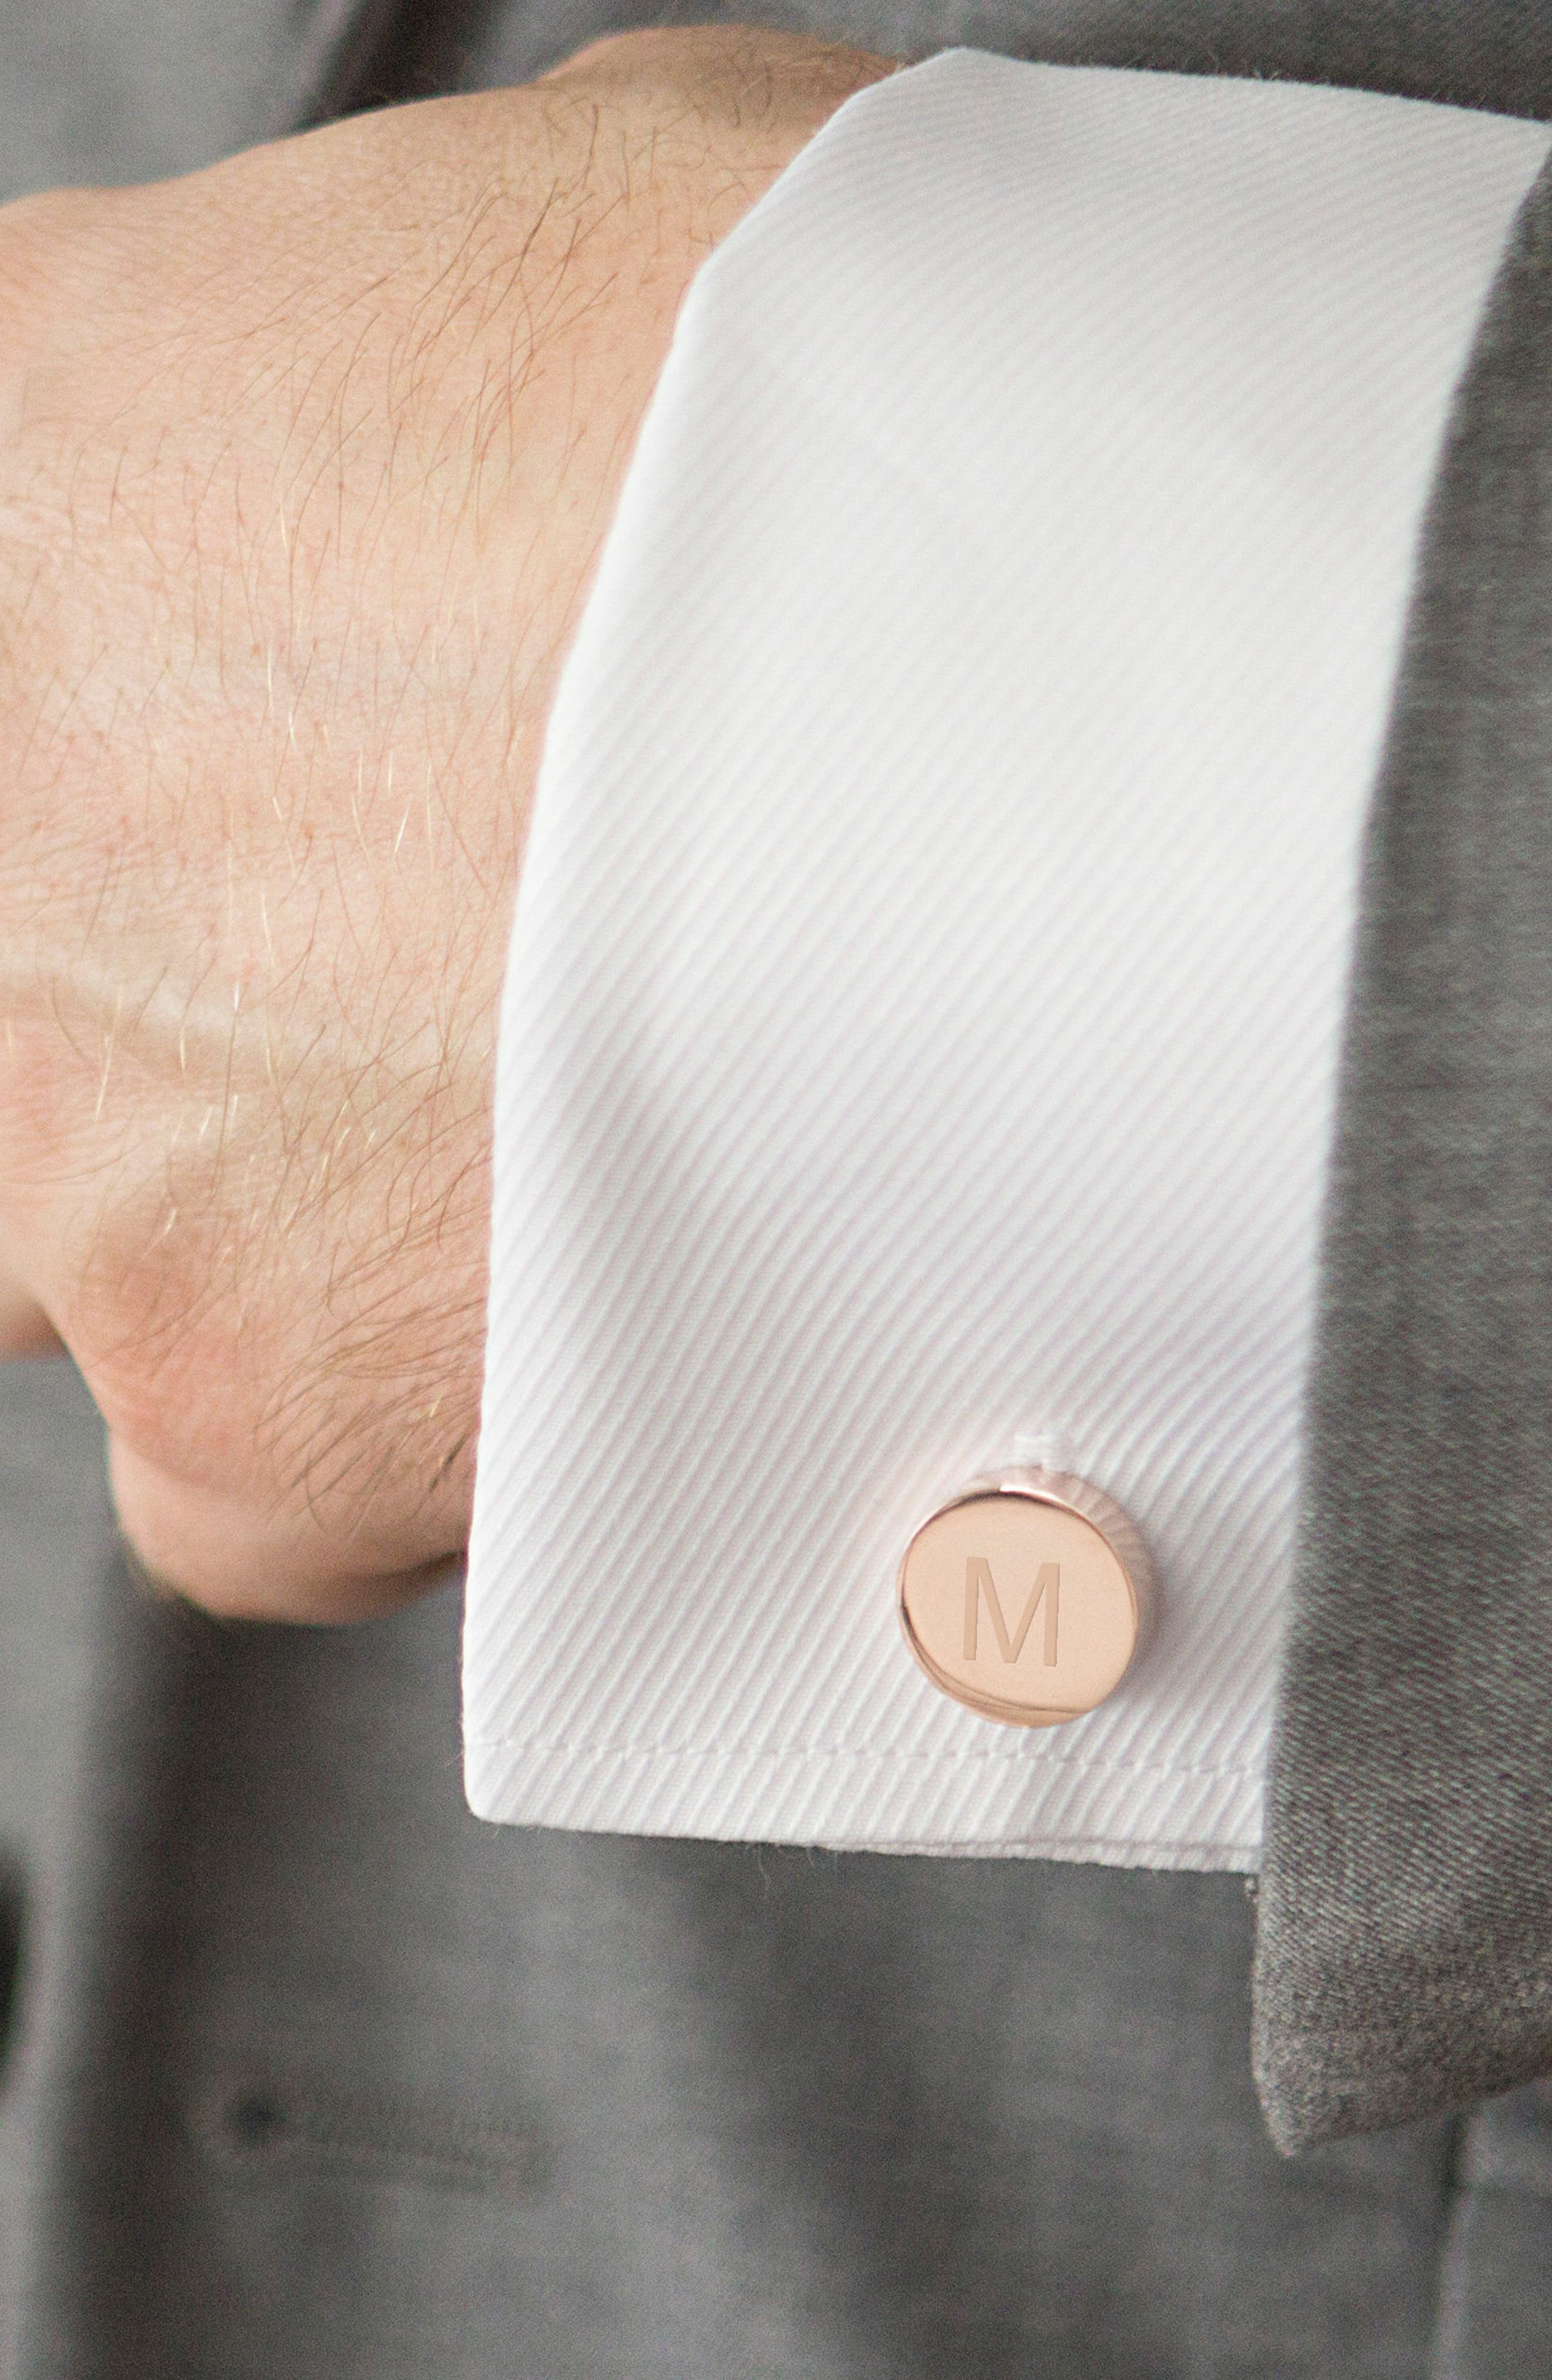 Monogram Cuff Links,                             Alternate thumbnail 3, color,